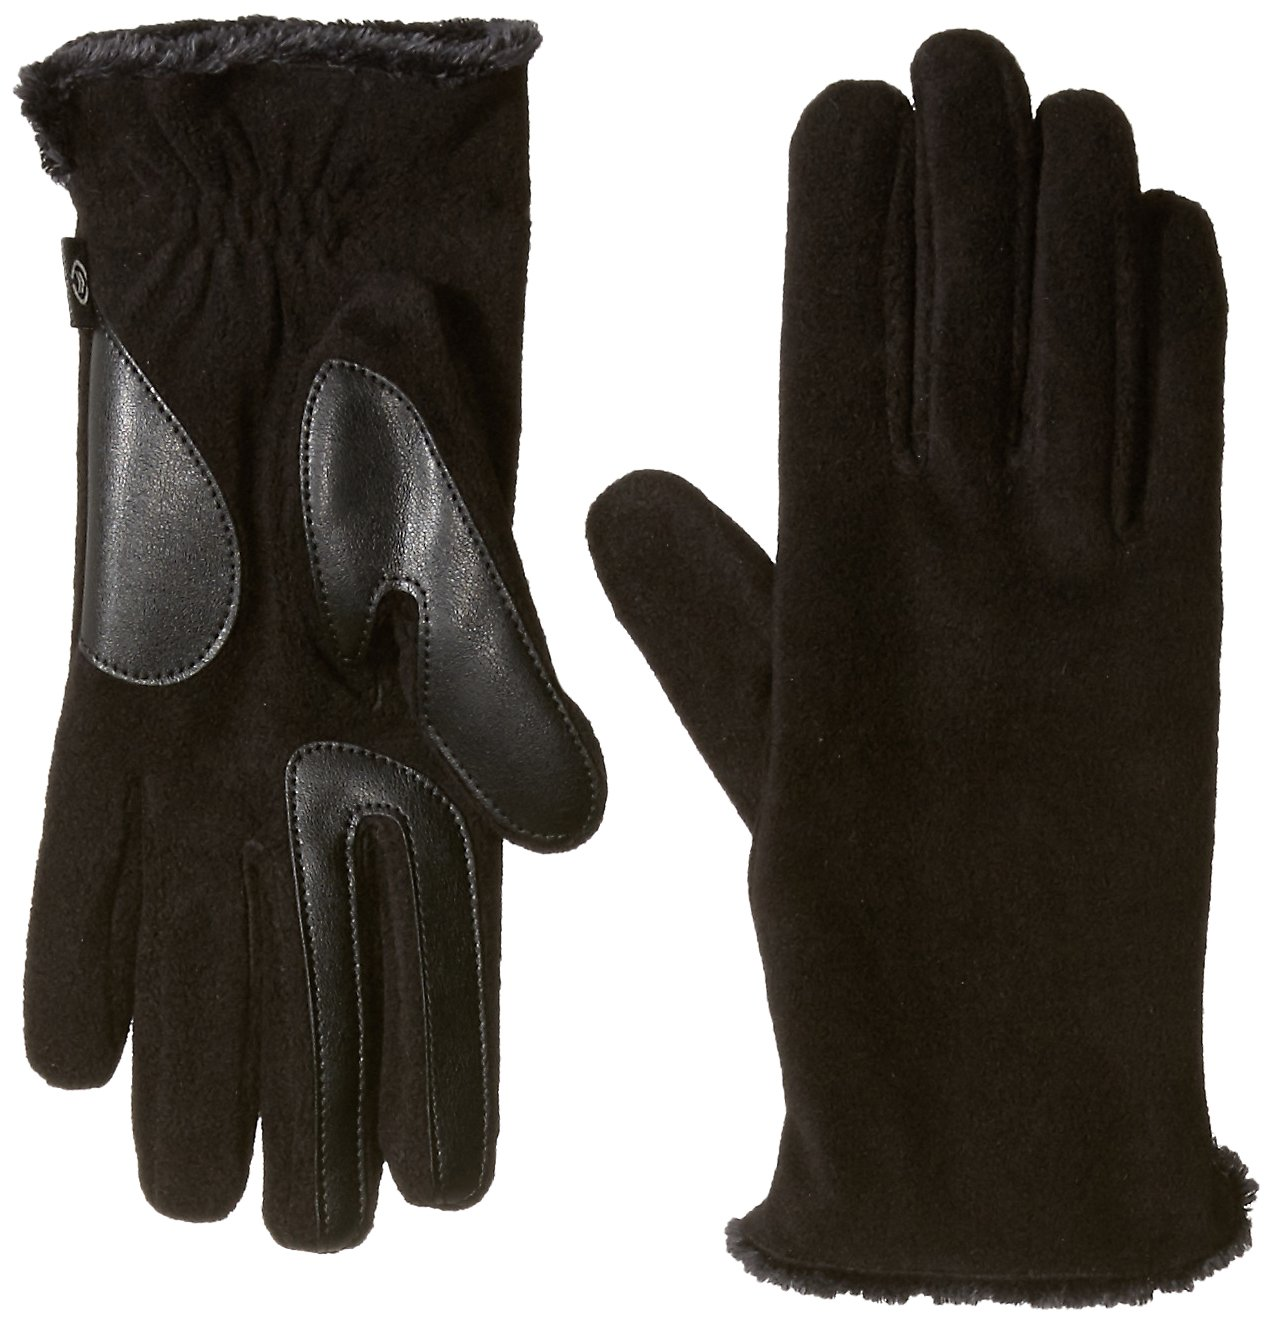 isotoner Women's Stretch Fleece Touchscreen Texting Cold Weather Gloves with Warm, Soft Lining